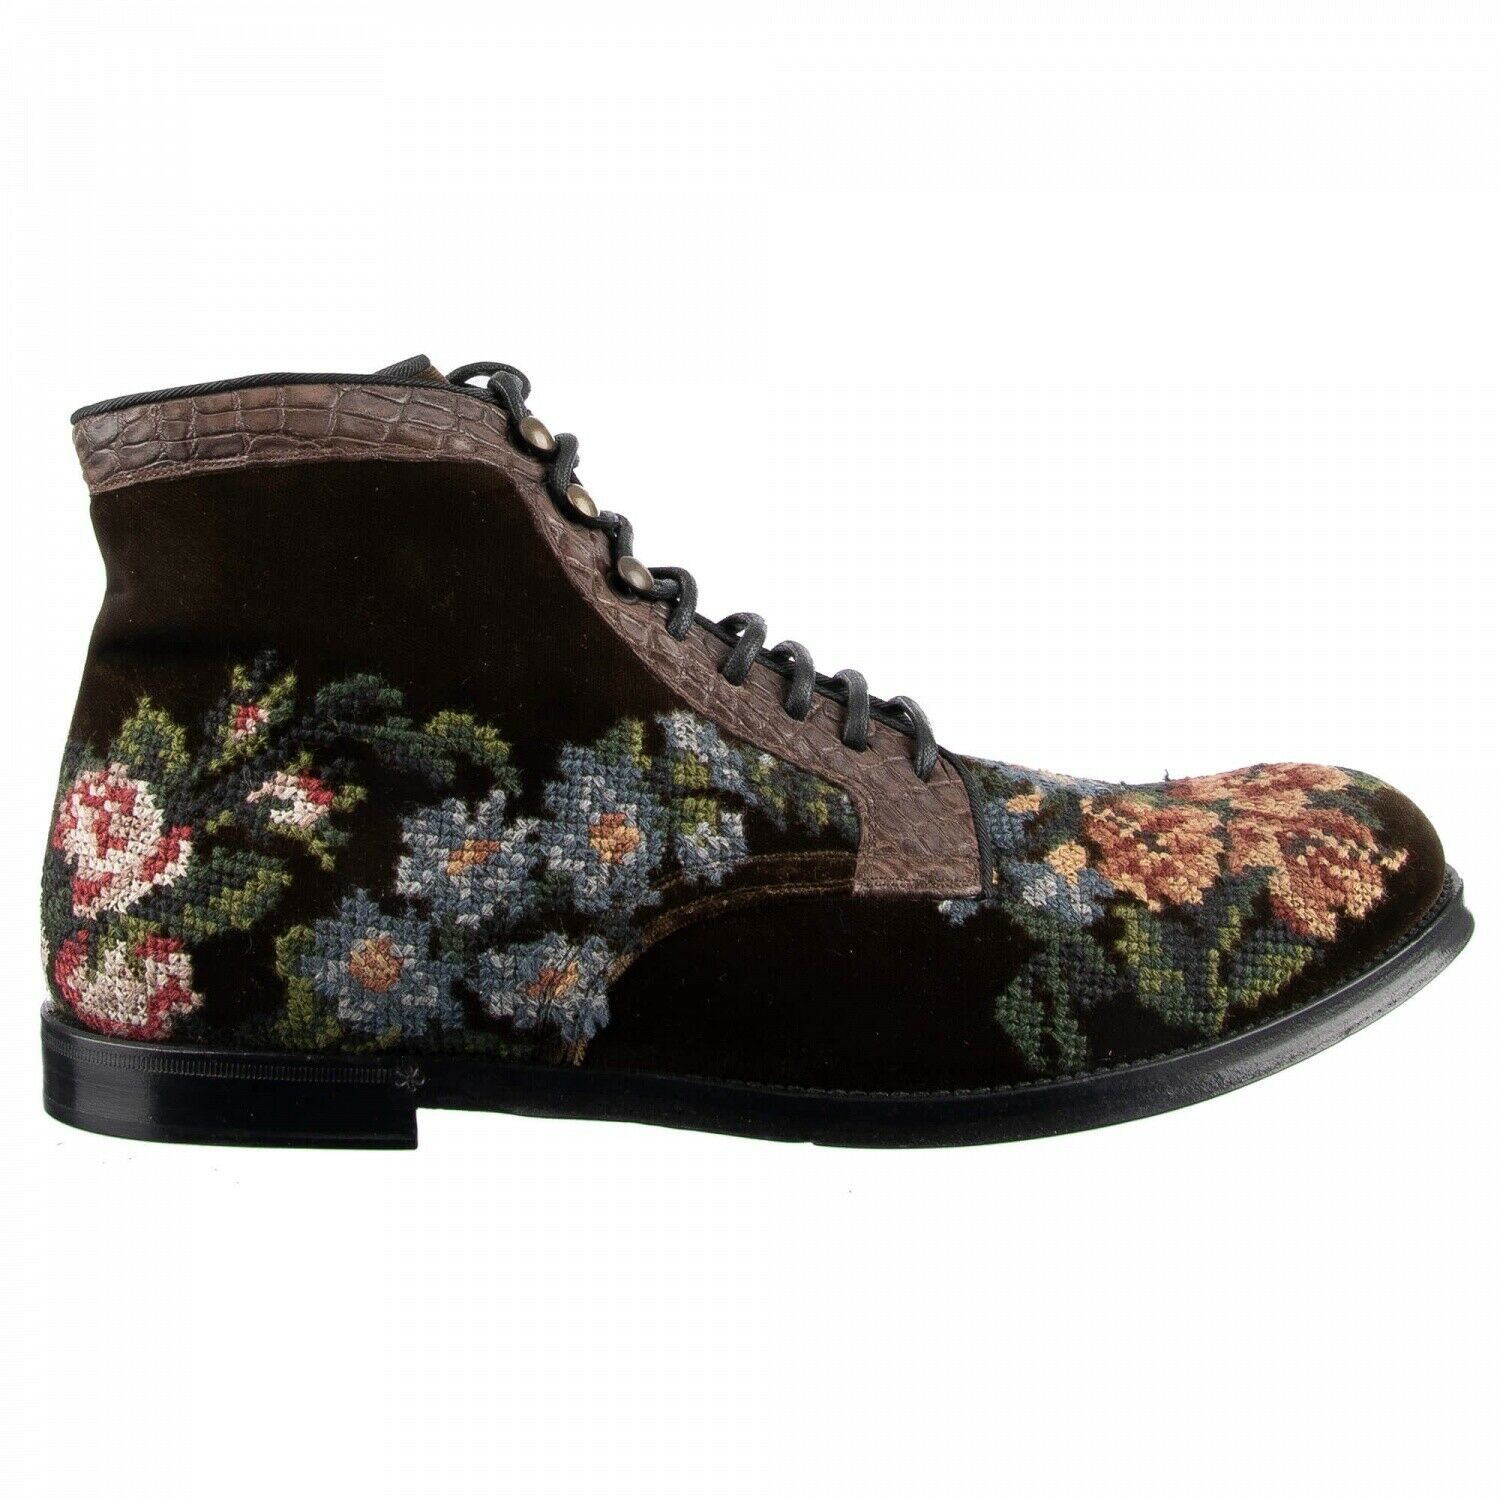 Dolce & Gabbana Velvet Croco Leather Boots Shoes Siracusa Embroidery Braun 44